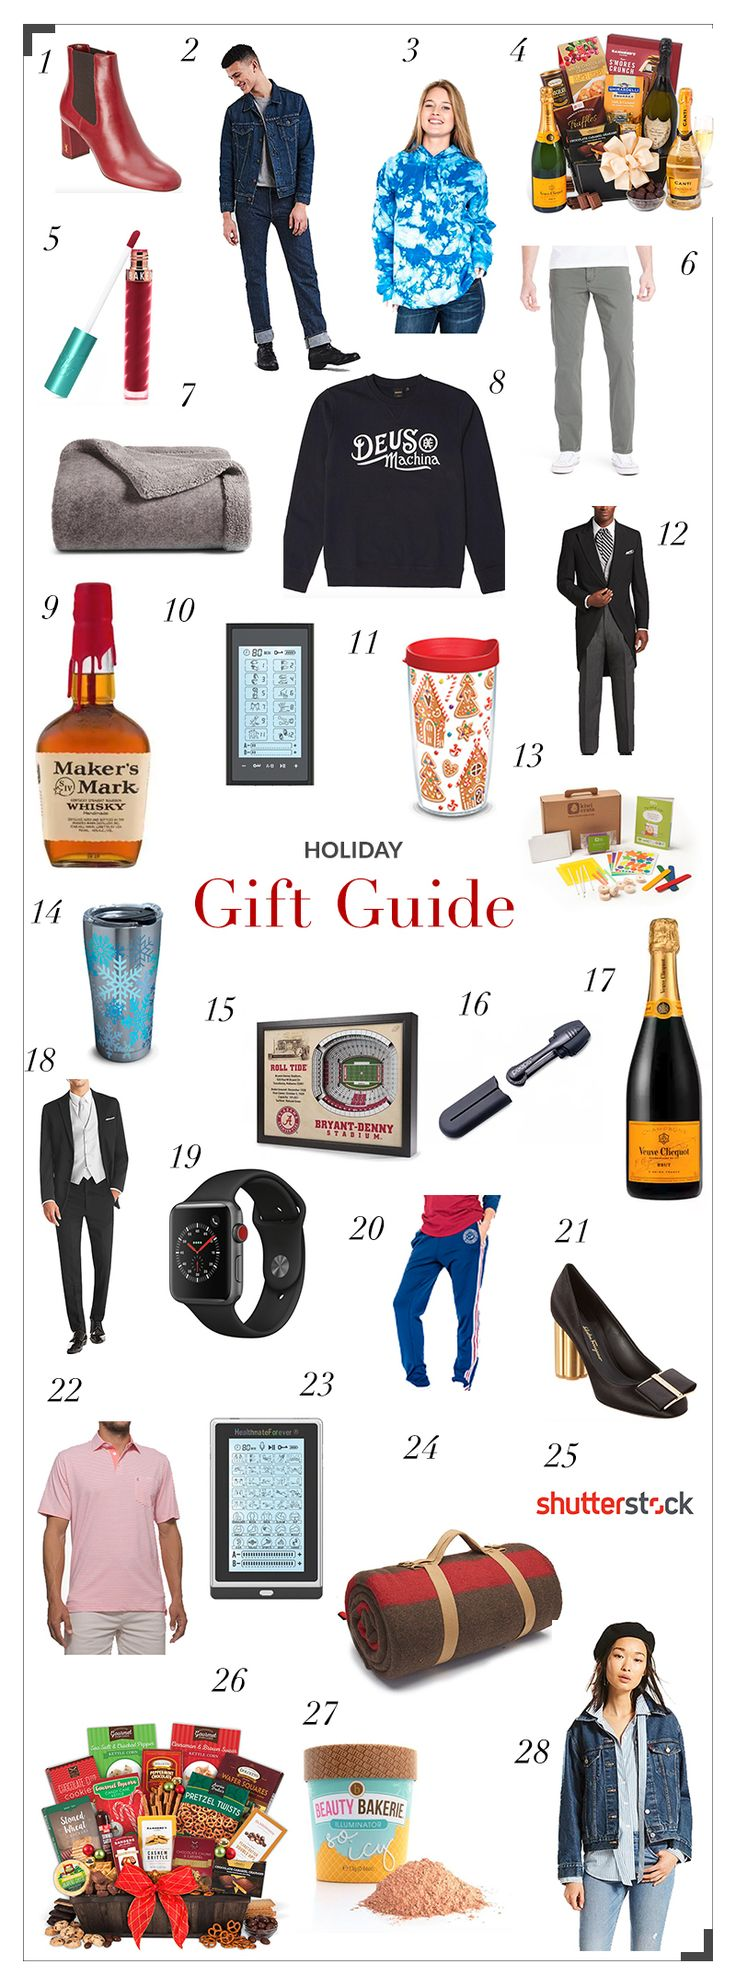 Holiday Gift Guide: Gifts for Everyone on Your List #giftguide #holiday #holdiaygiftguide #holidaygifts #gifts #giftsforhim #giftsforher #giftgiving #christmas #christmasgifts #giftideas